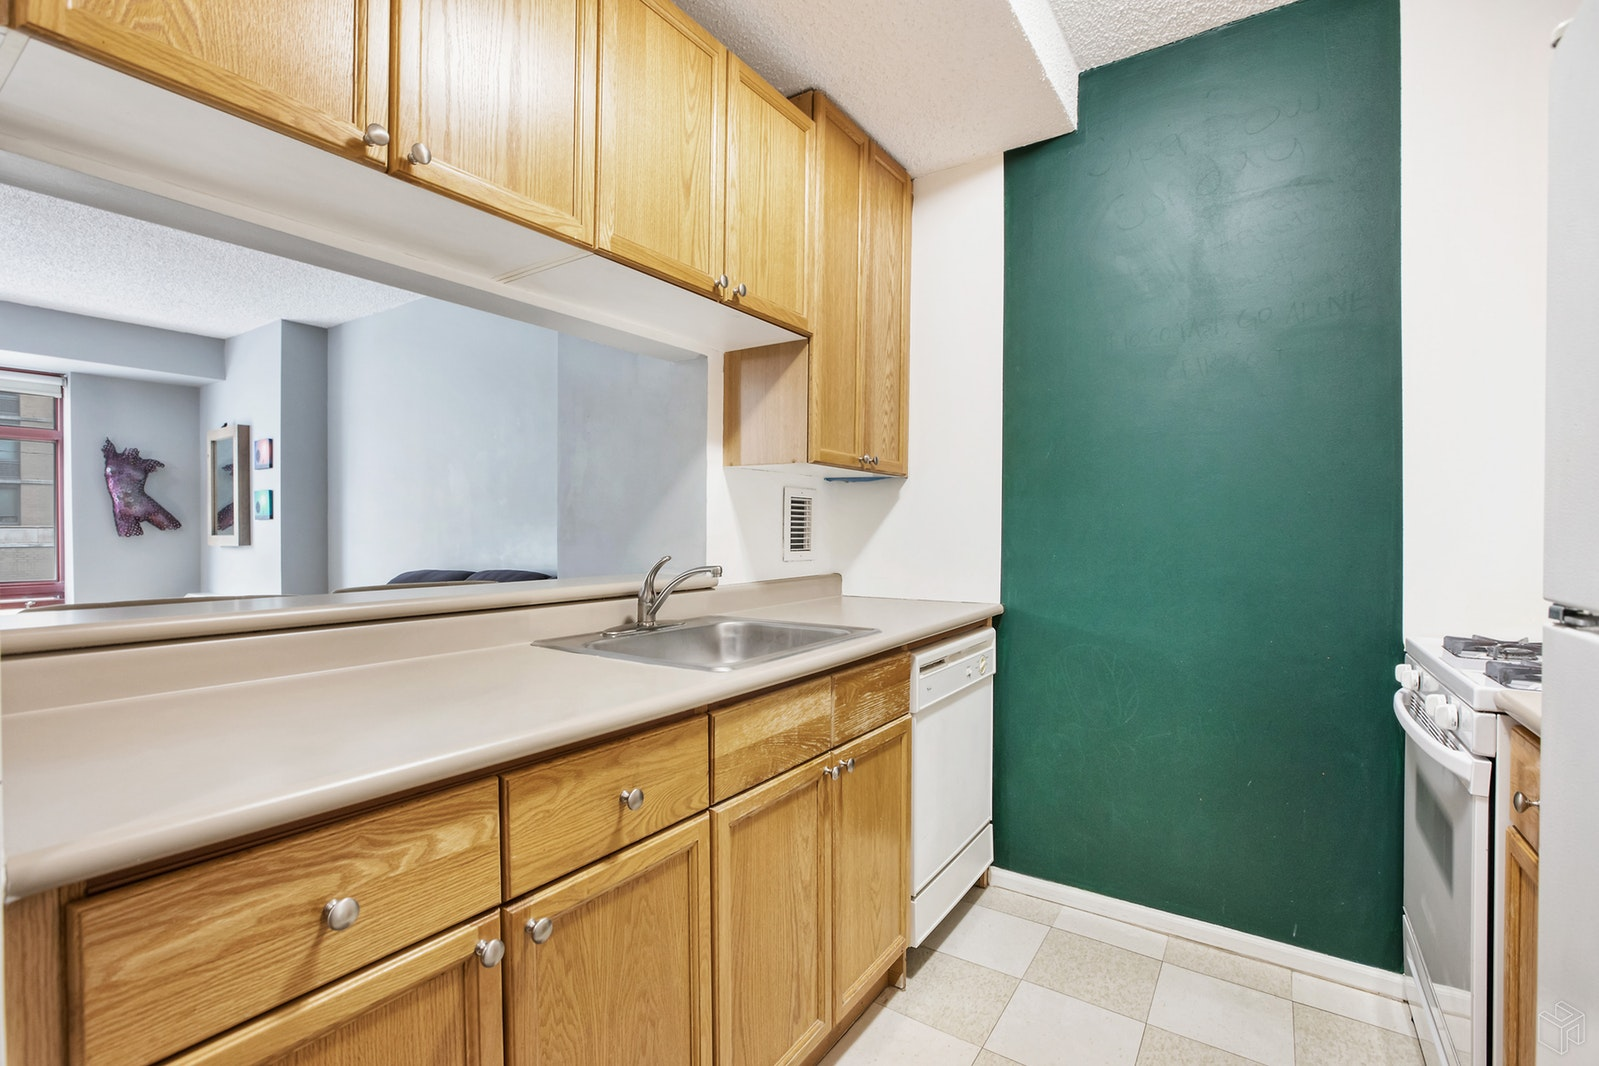 4 -74 48th Ave 2a, Long Island City, Queens, NY, 11109, $425,000, Property For Sale, Halstead Real Estate, Photo 3